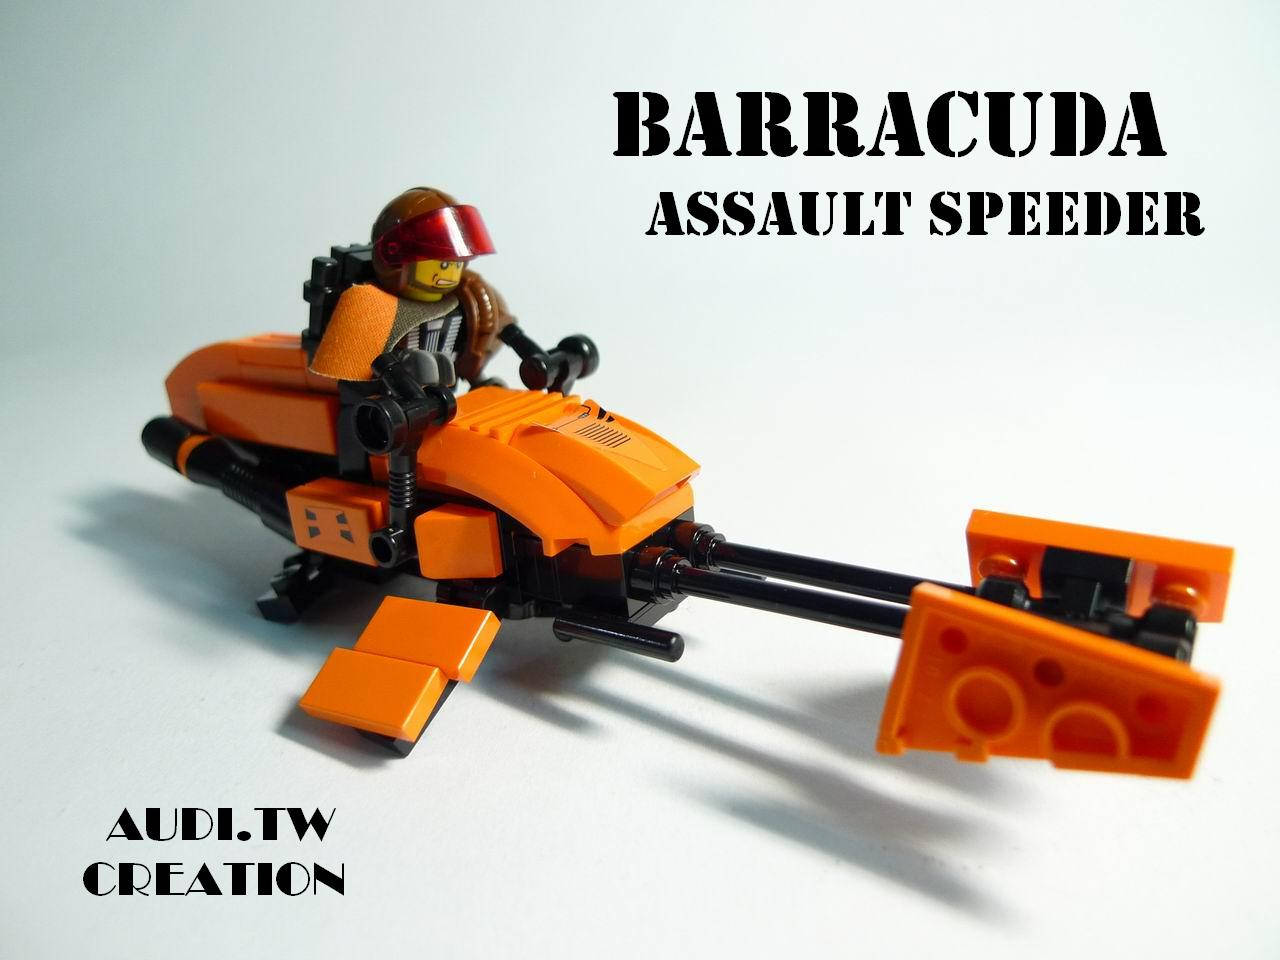 000-barracuda.jpg